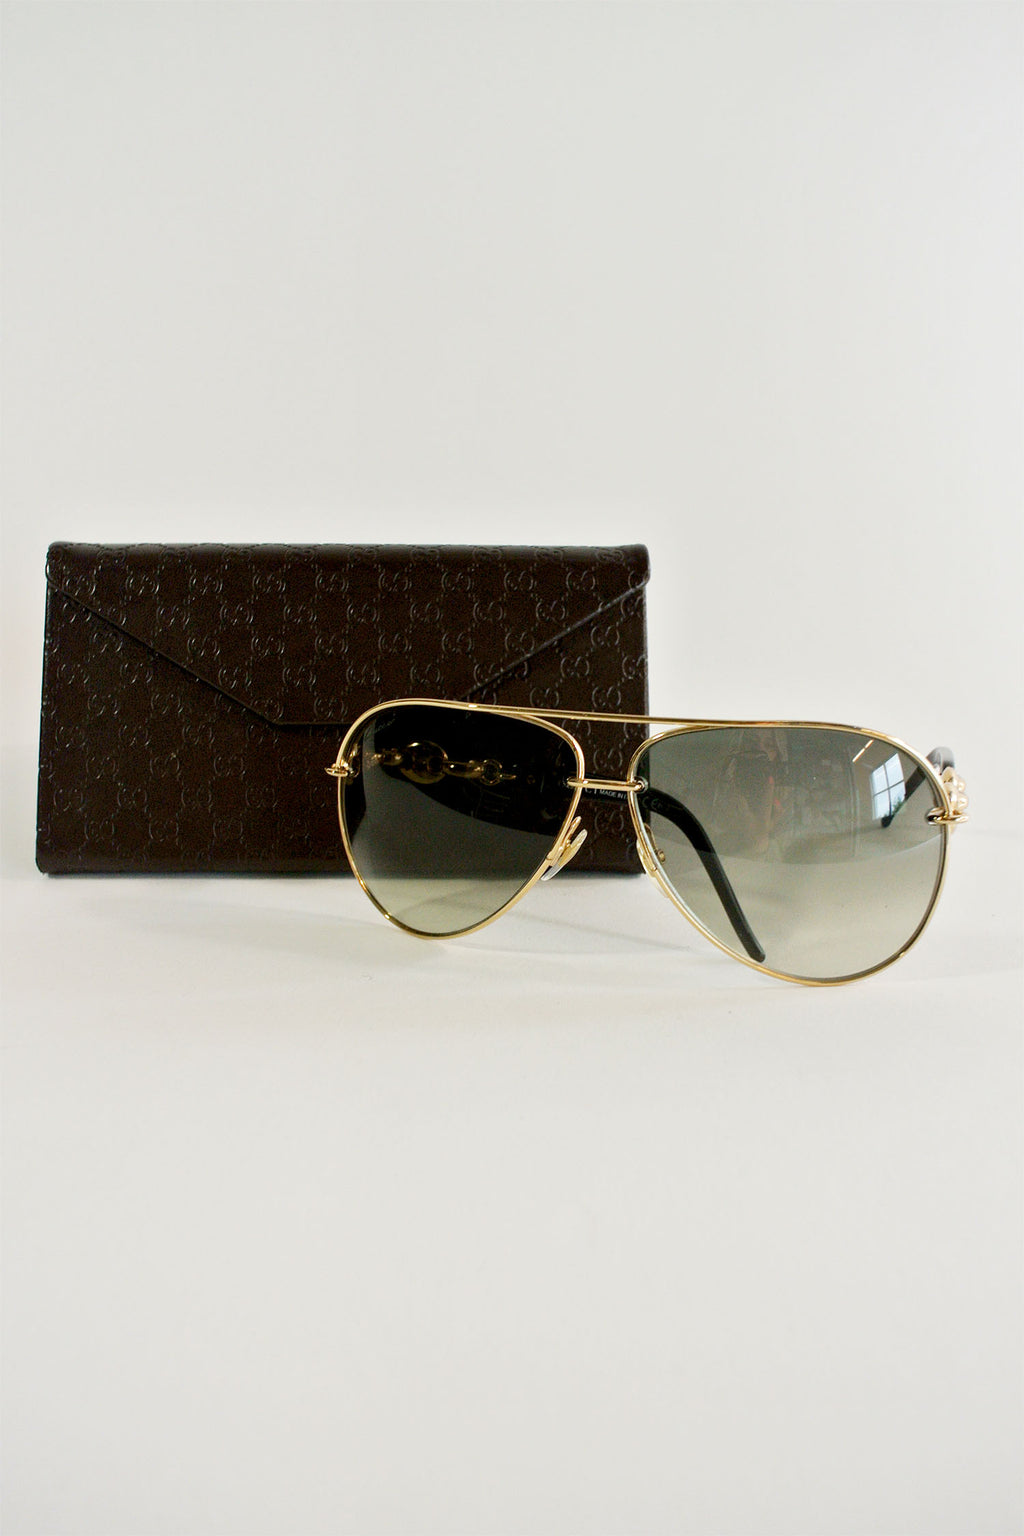 Gucci Gold Aviators